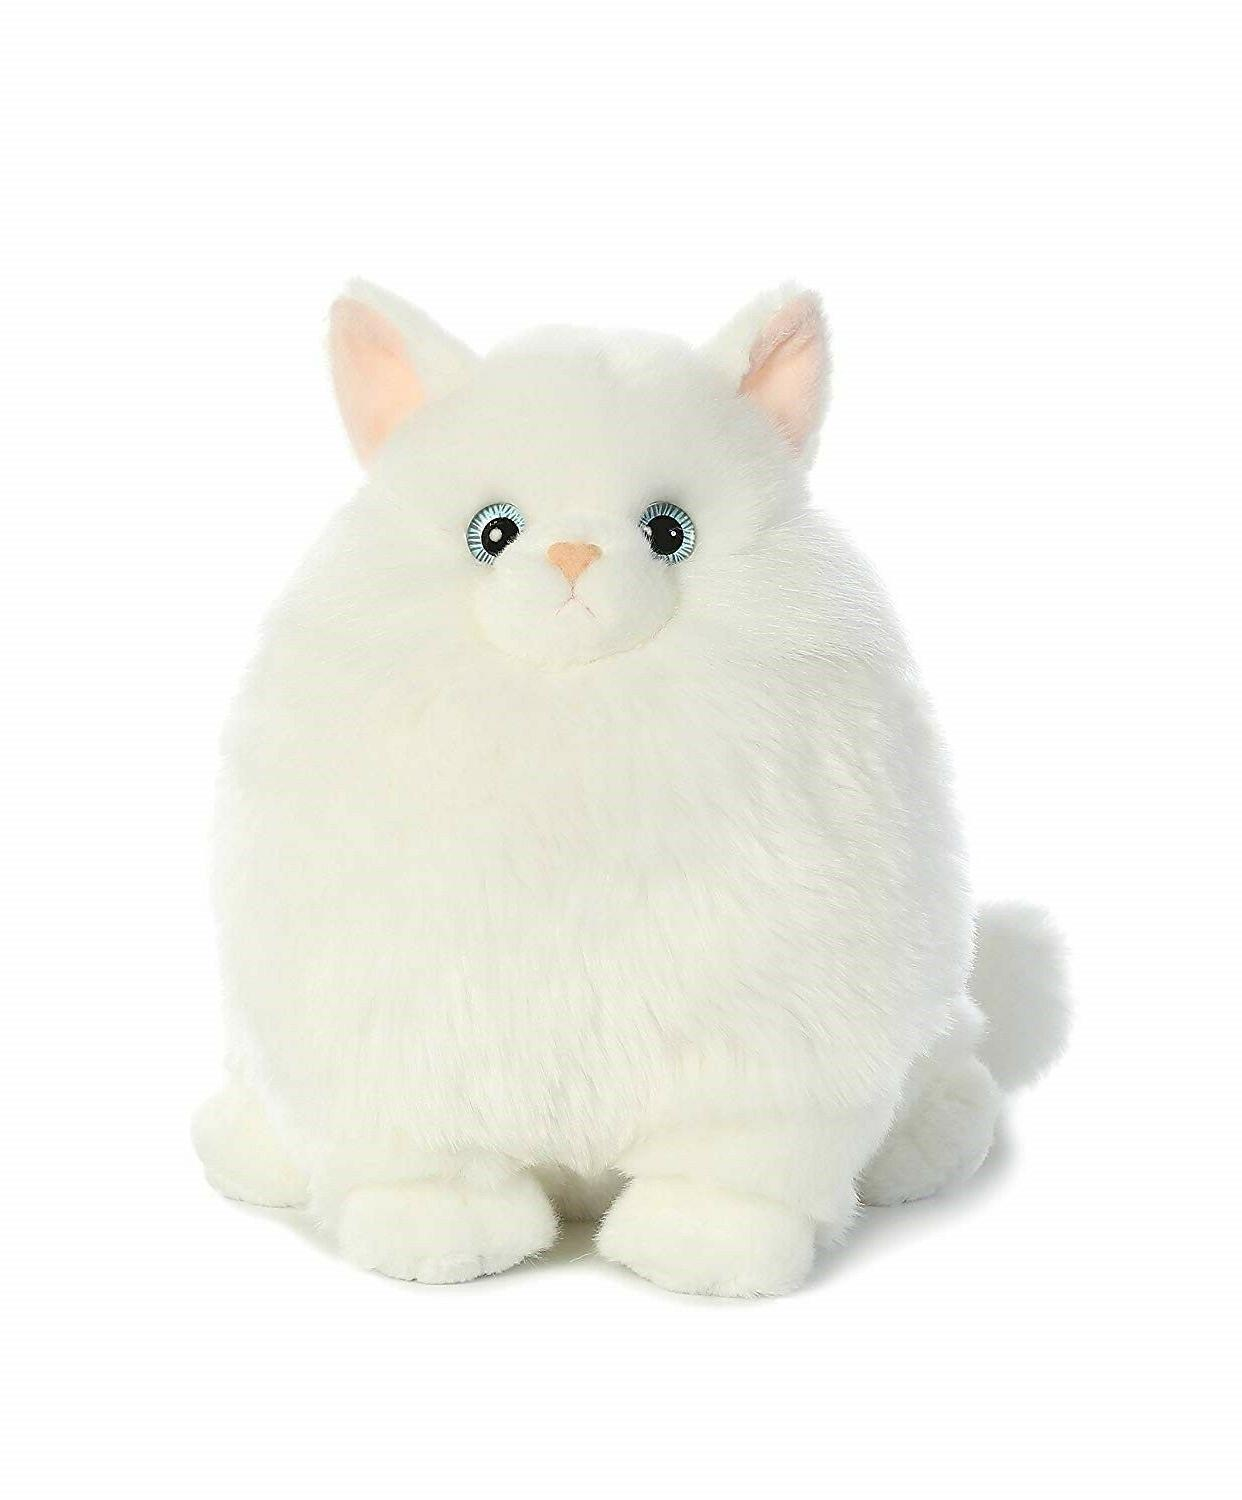 10 Inch Fat Cats Mashmallow Persian Cat Plush Stuffed Animal